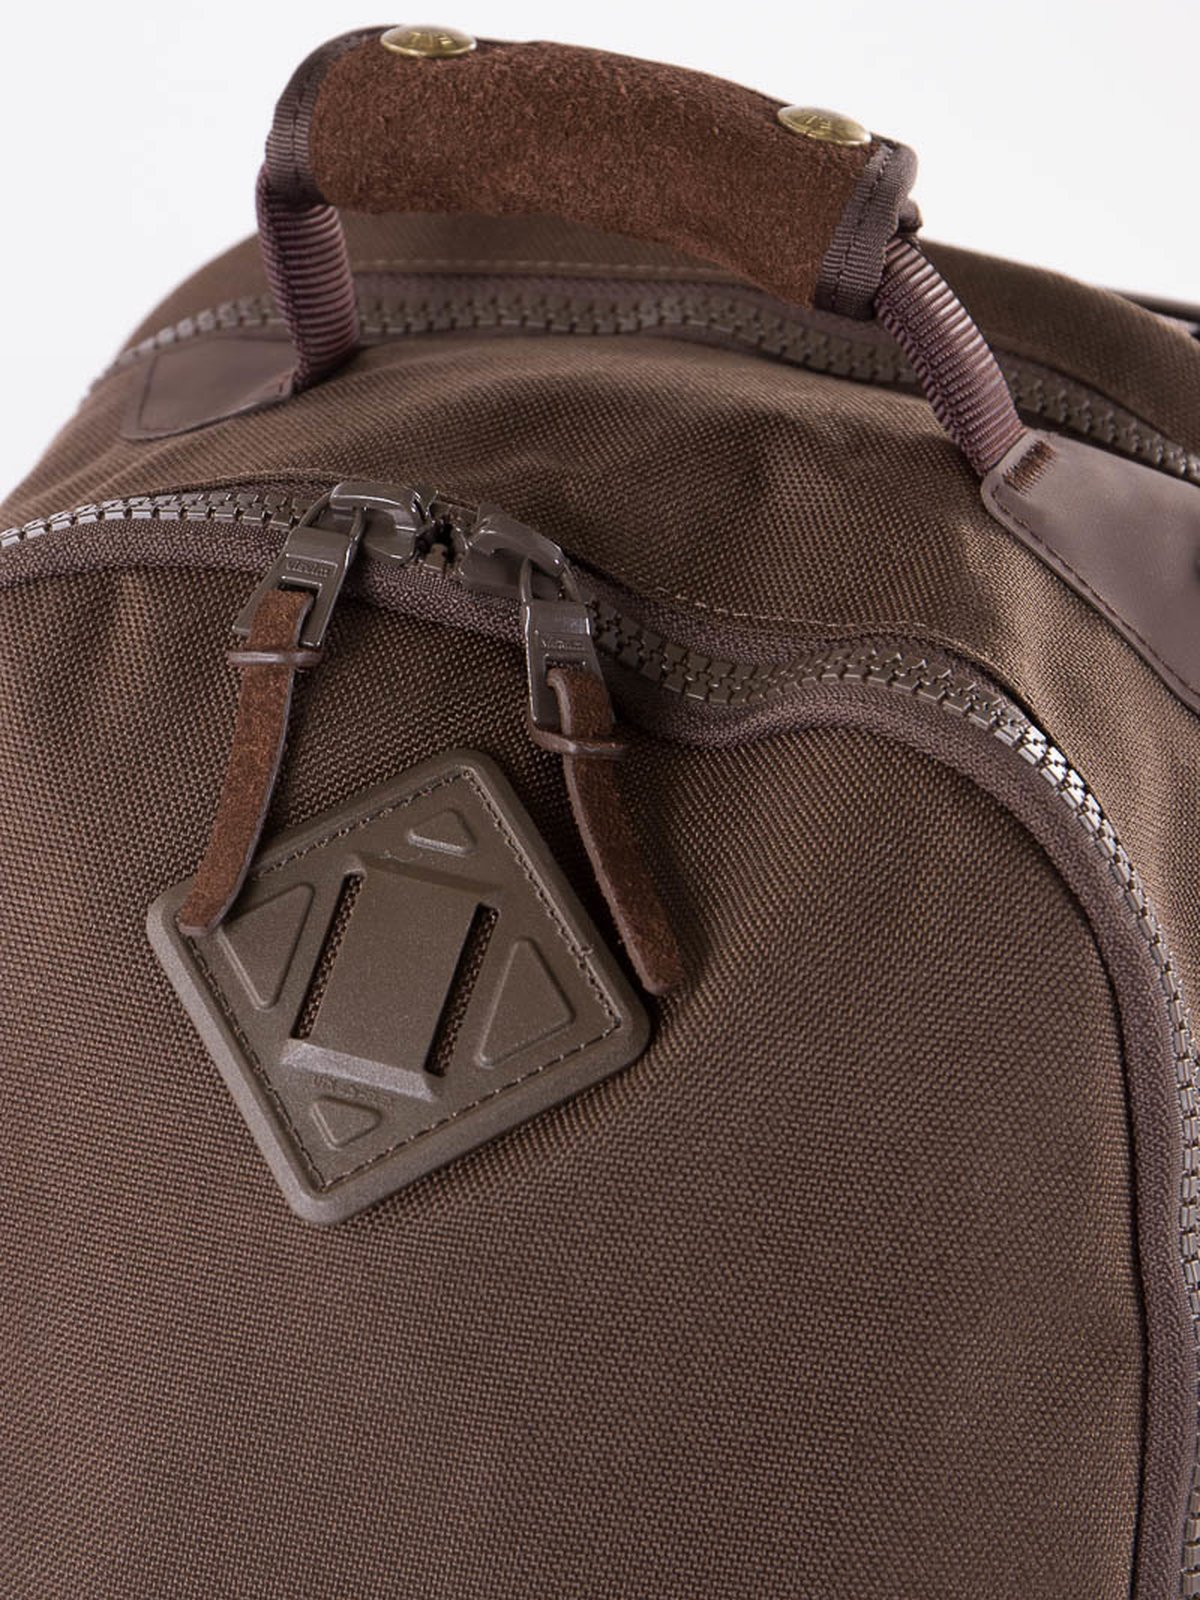 Brown 20L Cordura Backpack - Image 7